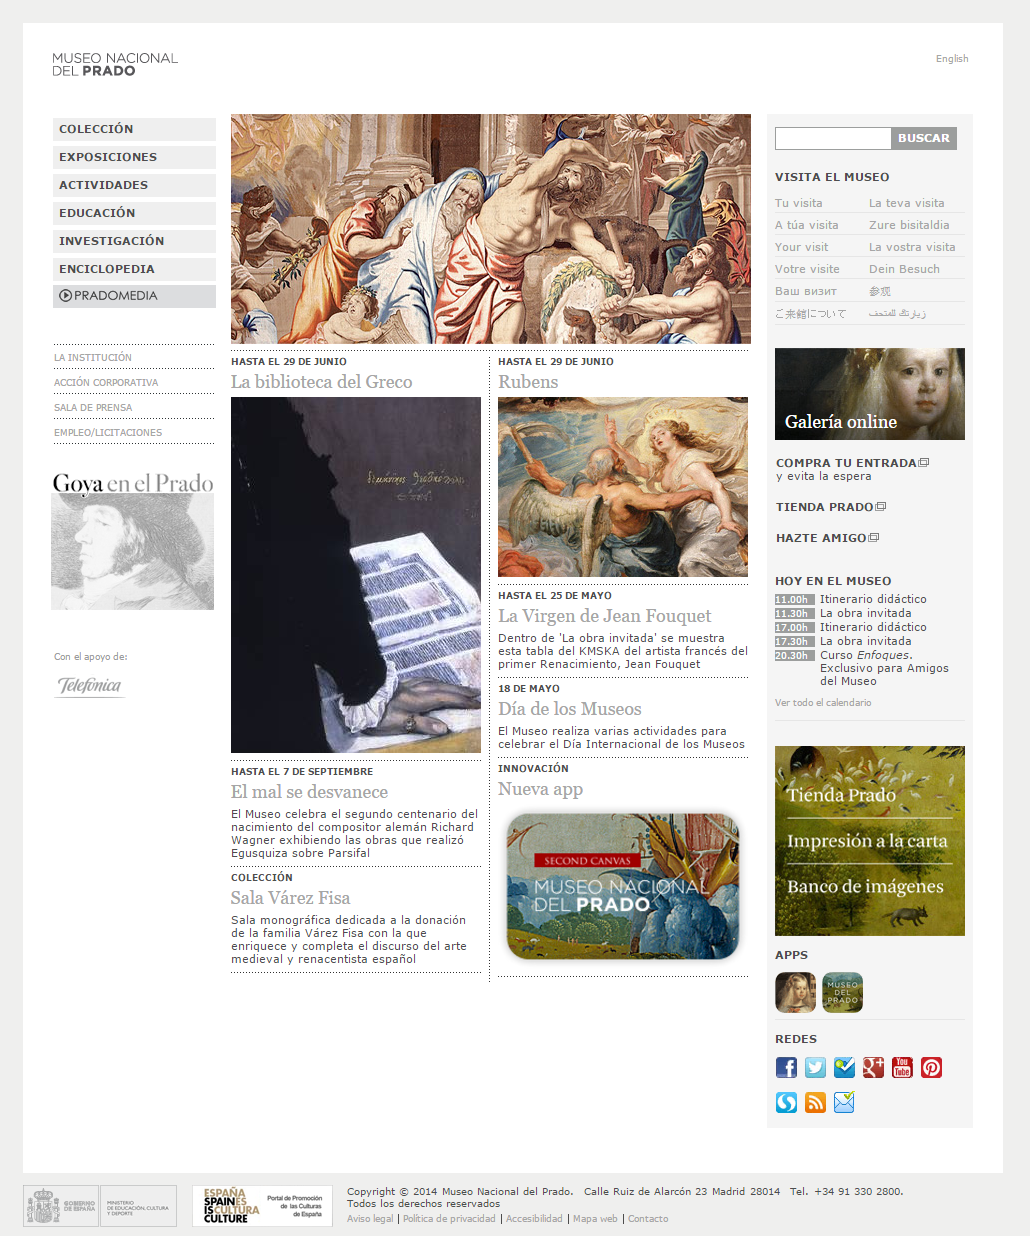 Figure 1. Forner Museo del Prado's website (Published 2007)